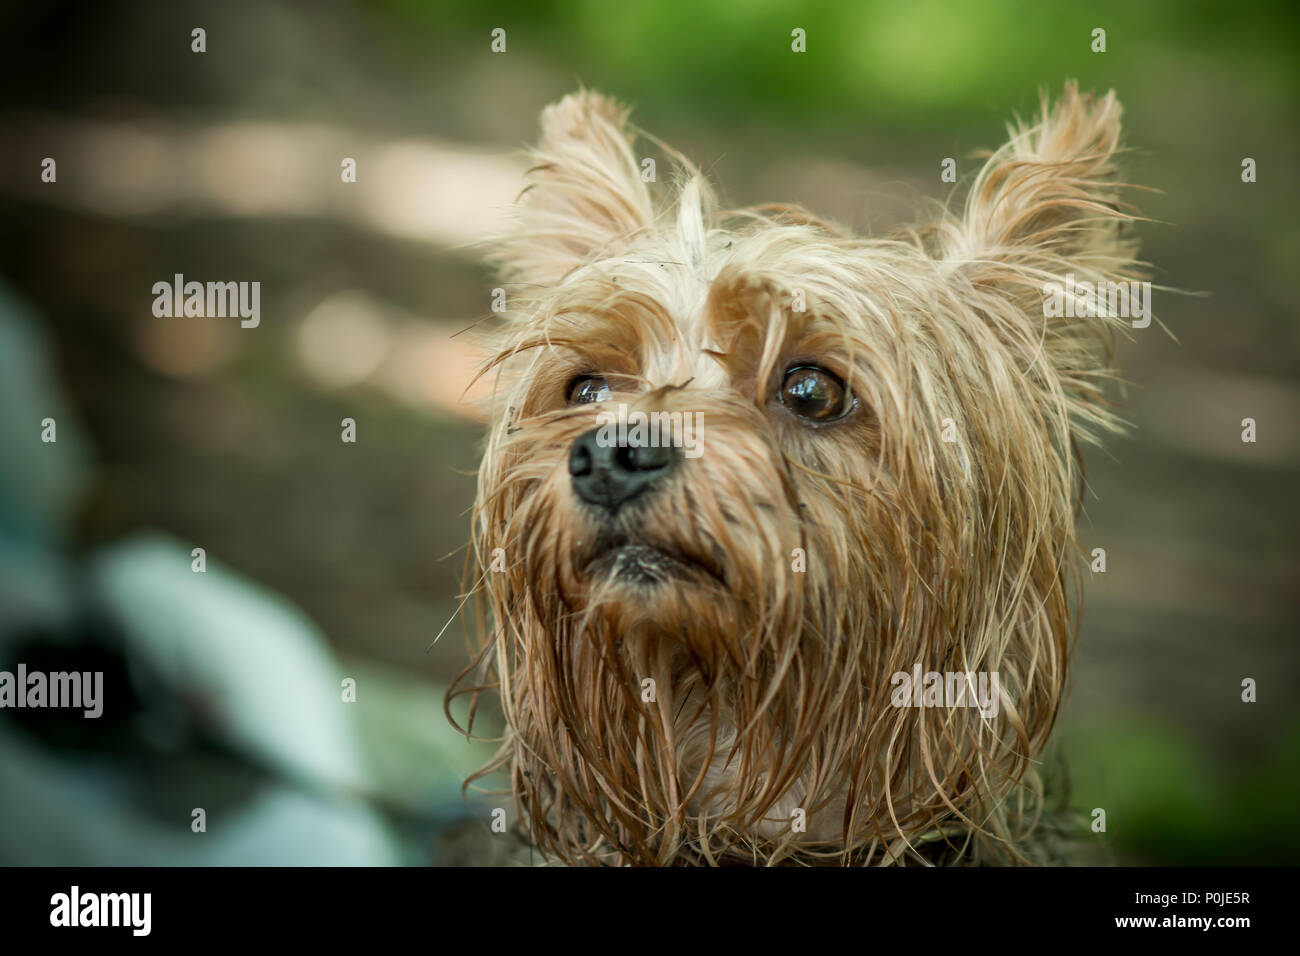 awesome Small Cute Smart Part - 3: Cute Yorkshire Terrier on a walk Cute puppy. Terrier with a smart look. A  small handsome erzhensky terrier. A dog with an intelligent look.